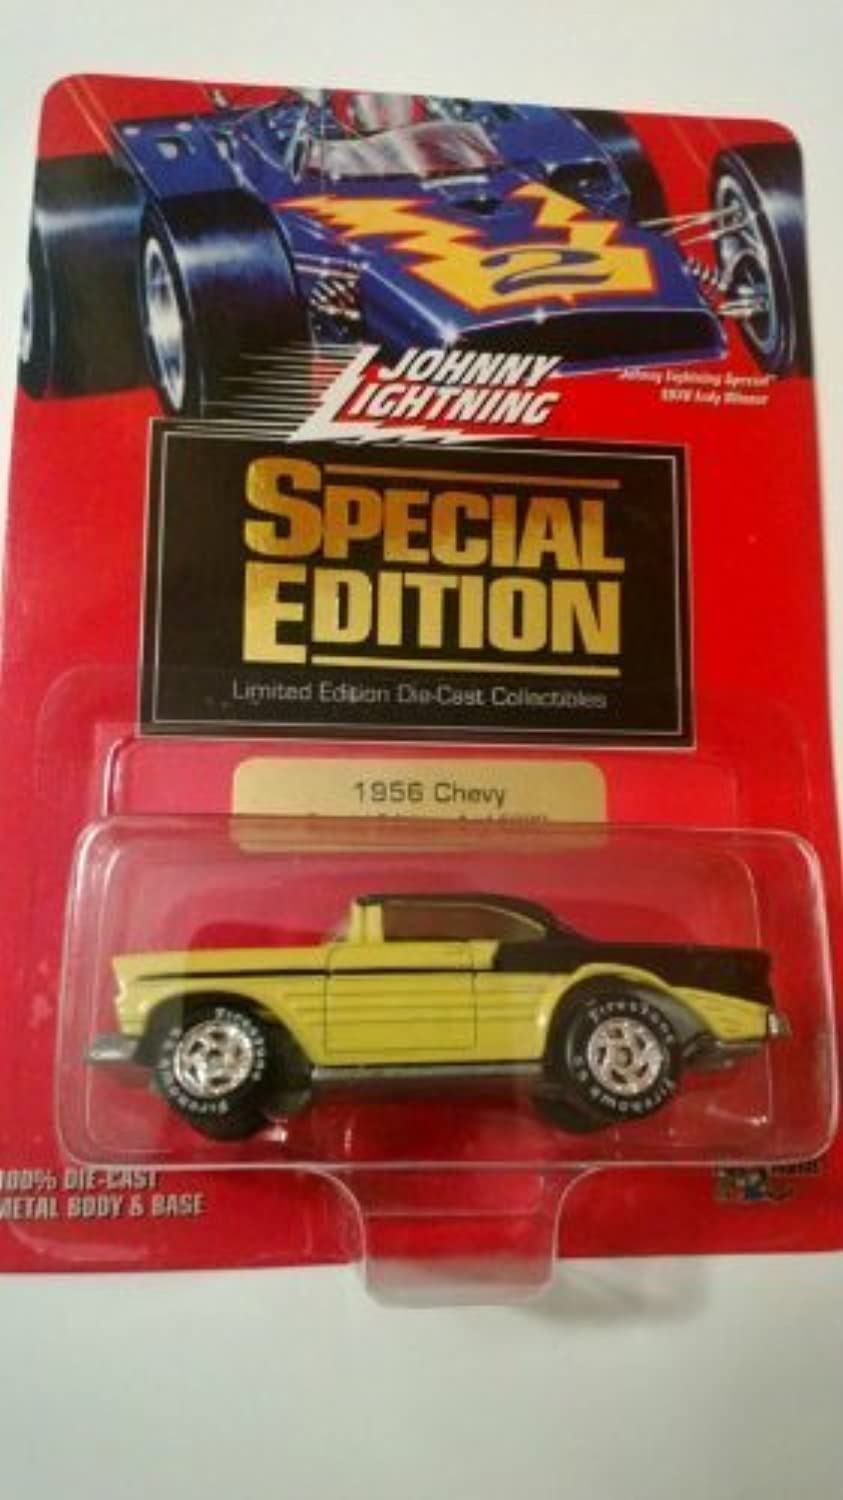 Johnny Lightning Special Edition 1 of 5000 1956 Chevy Yellow Black by Playing Mantis